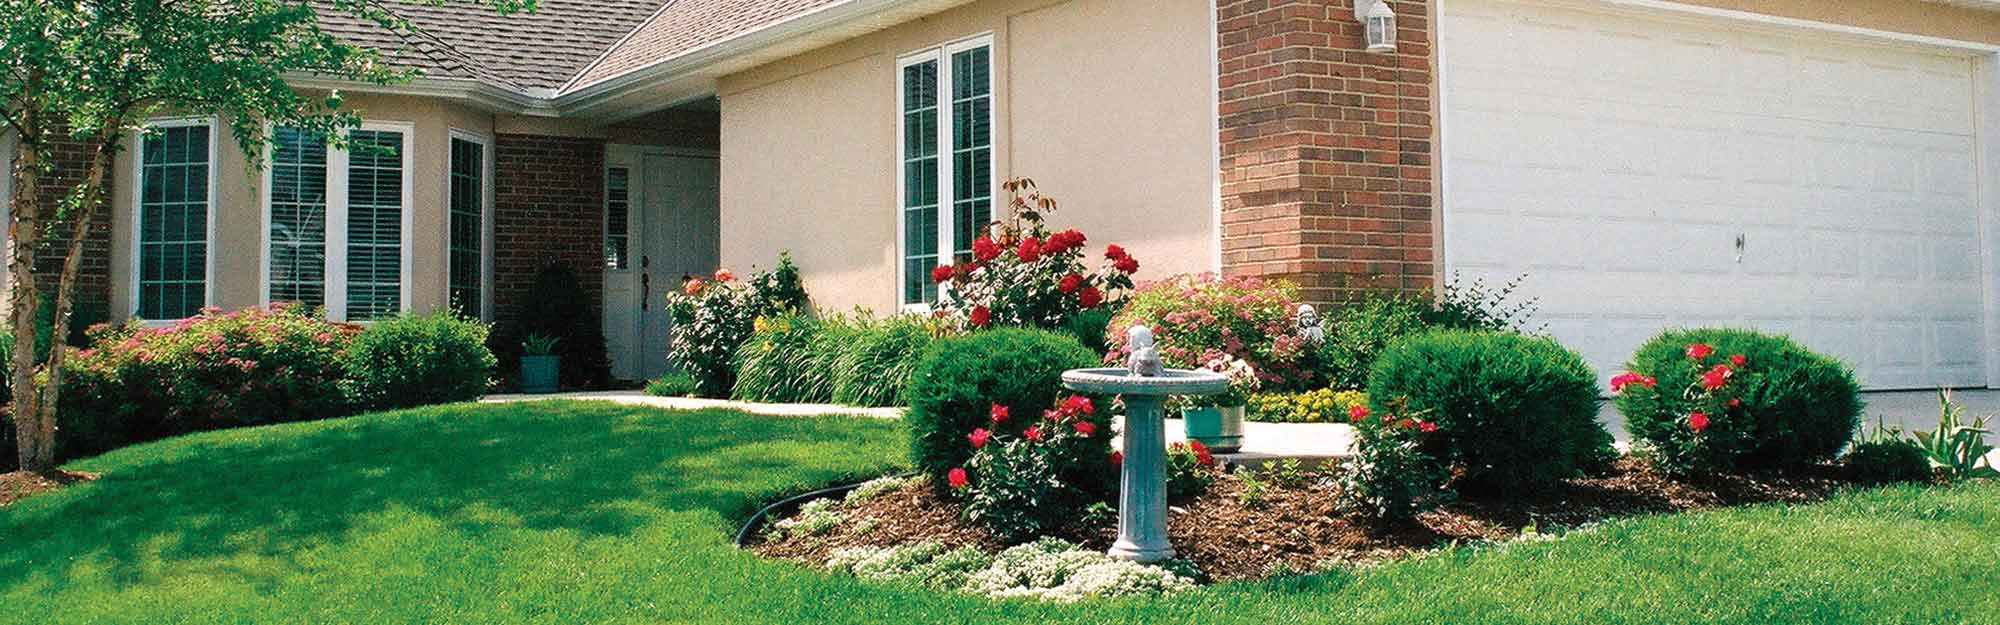 Image of a garden at Kingswood Senior Living Located in Kansas City, MO.